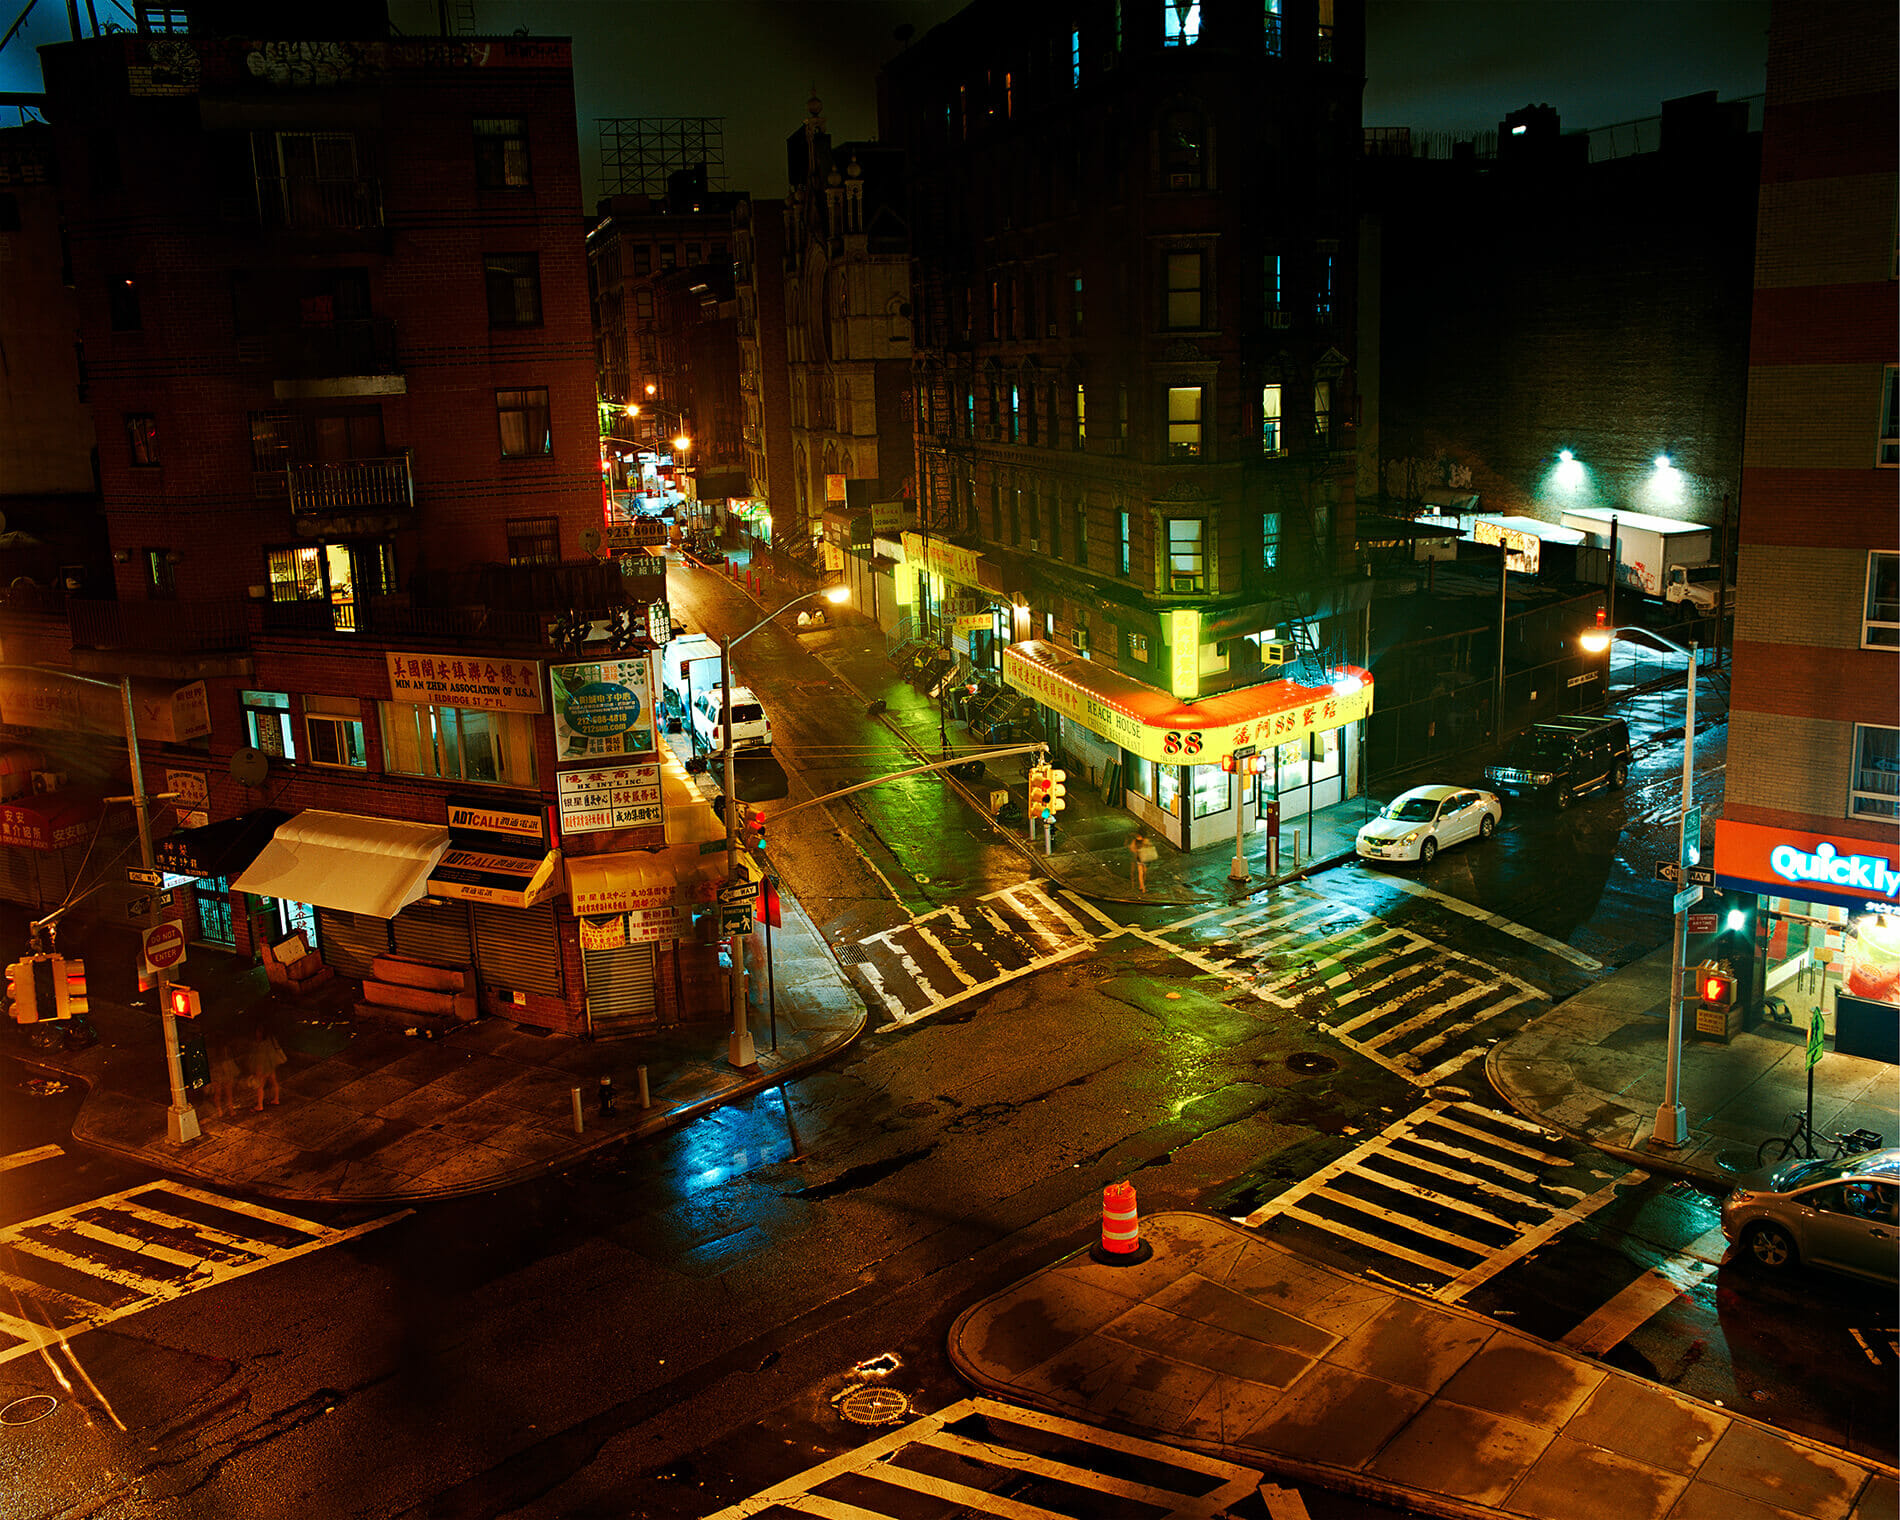 Night shot of Lower East Side intersection